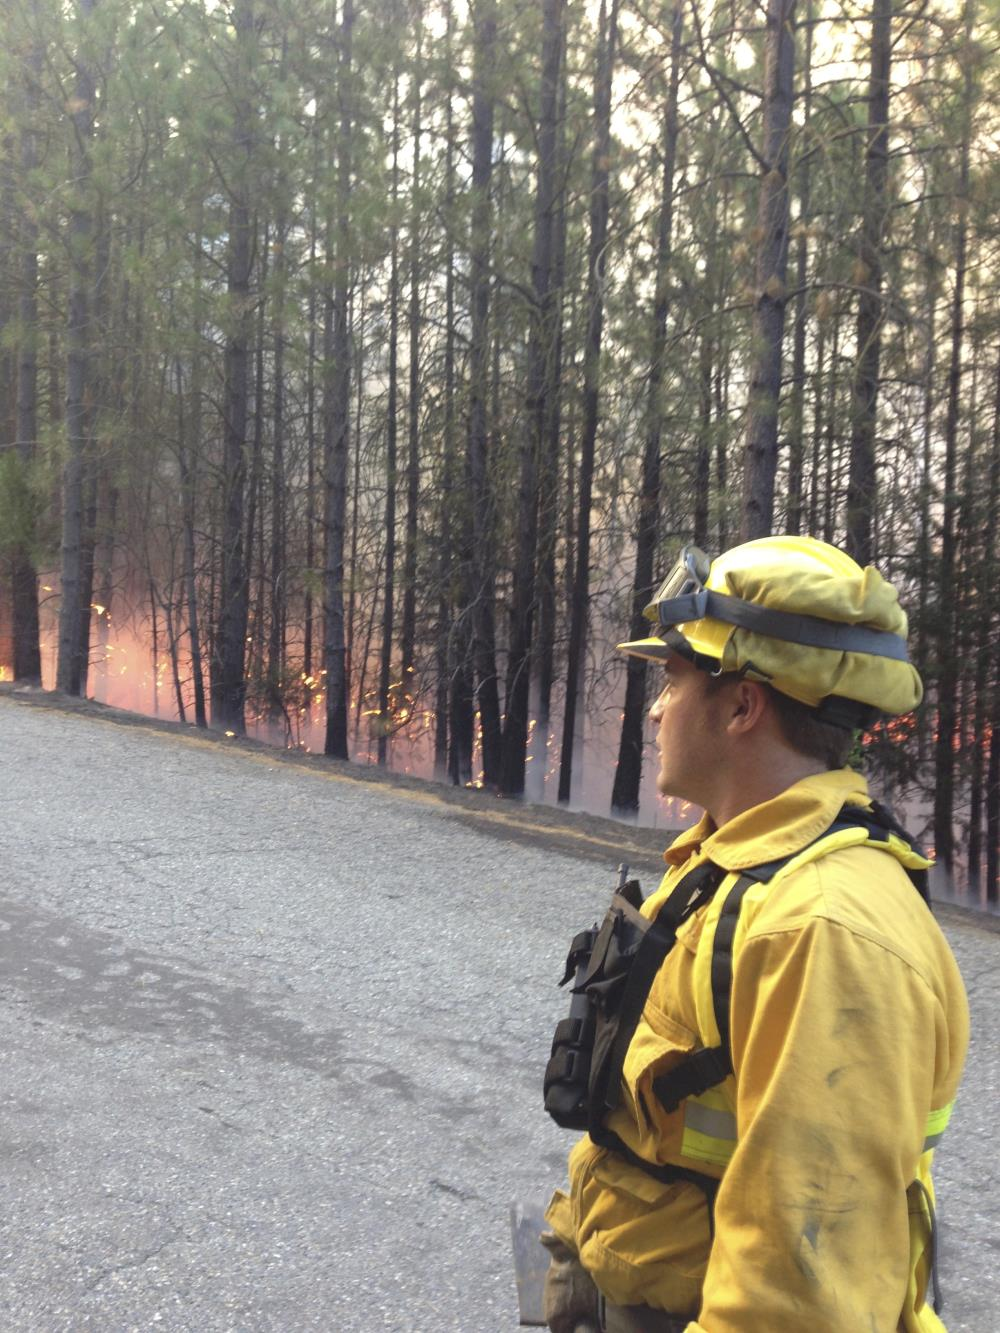 Firefighter at Forest Fire